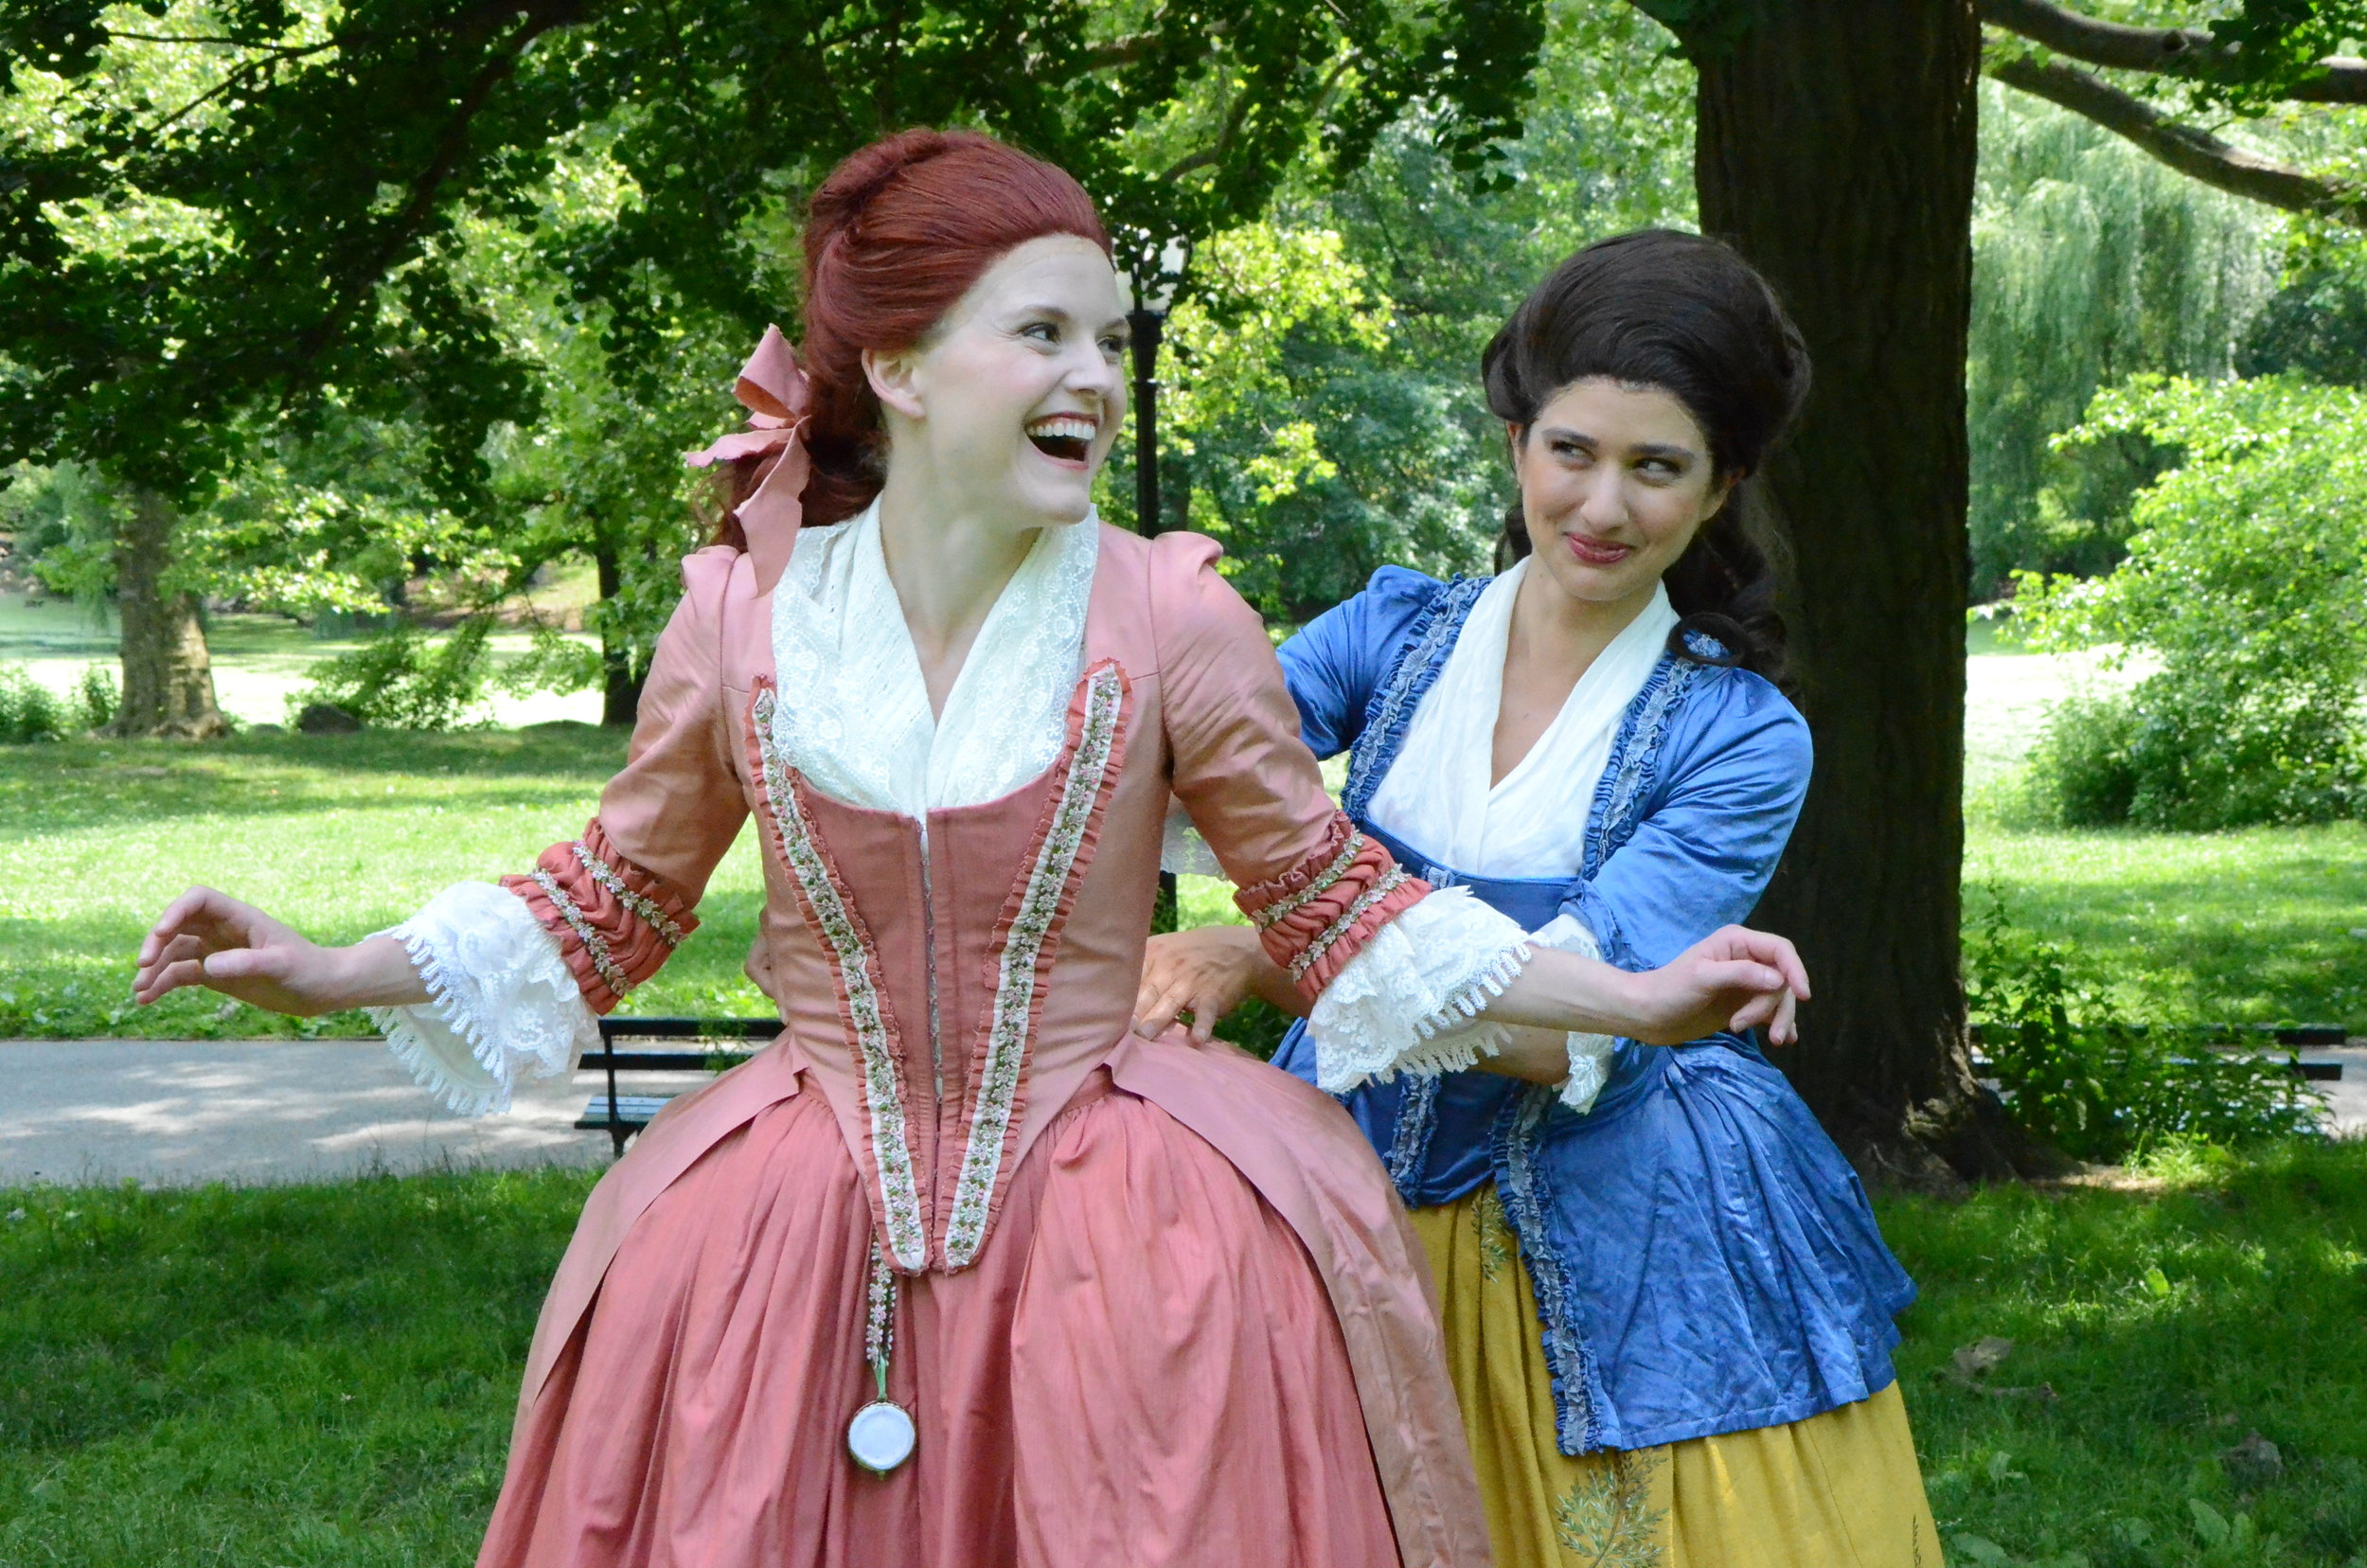 New York Classical free theatre in the park The Rivals Richard Brinsley Sheridan Mrs Malaprop